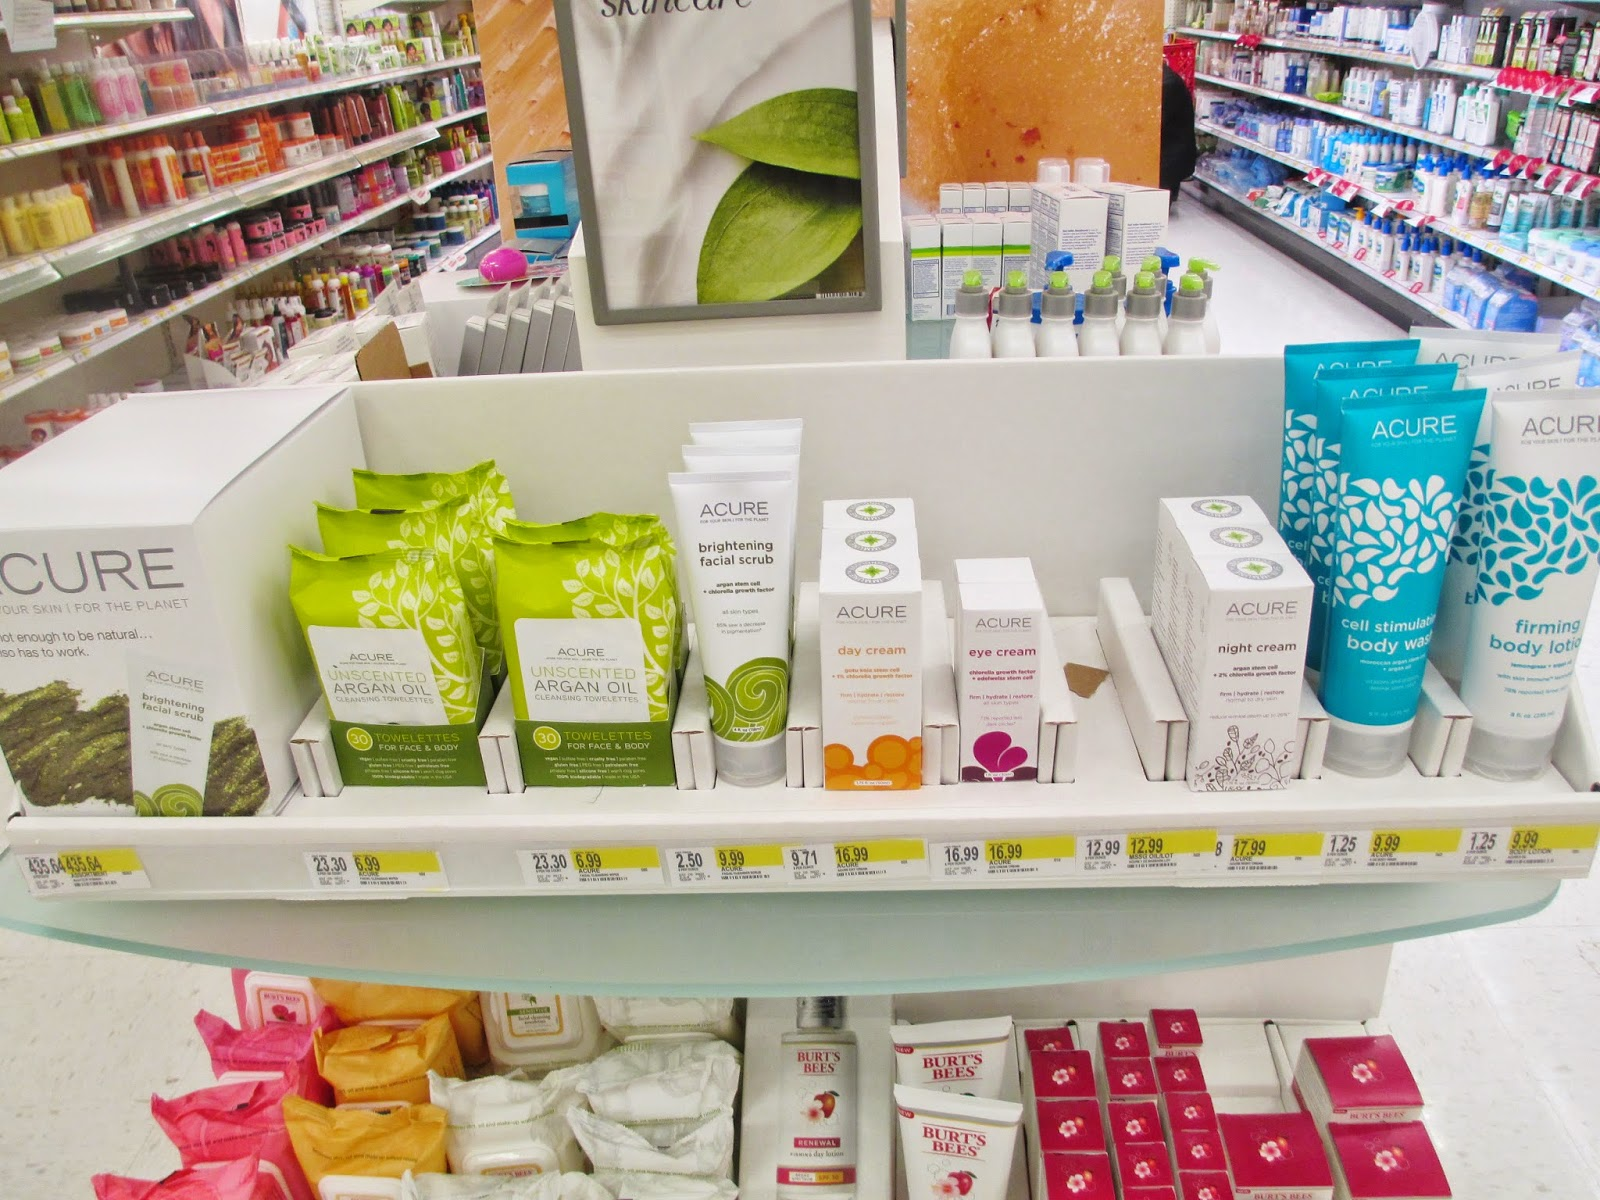 Rawdorable: Acure Organics at Target